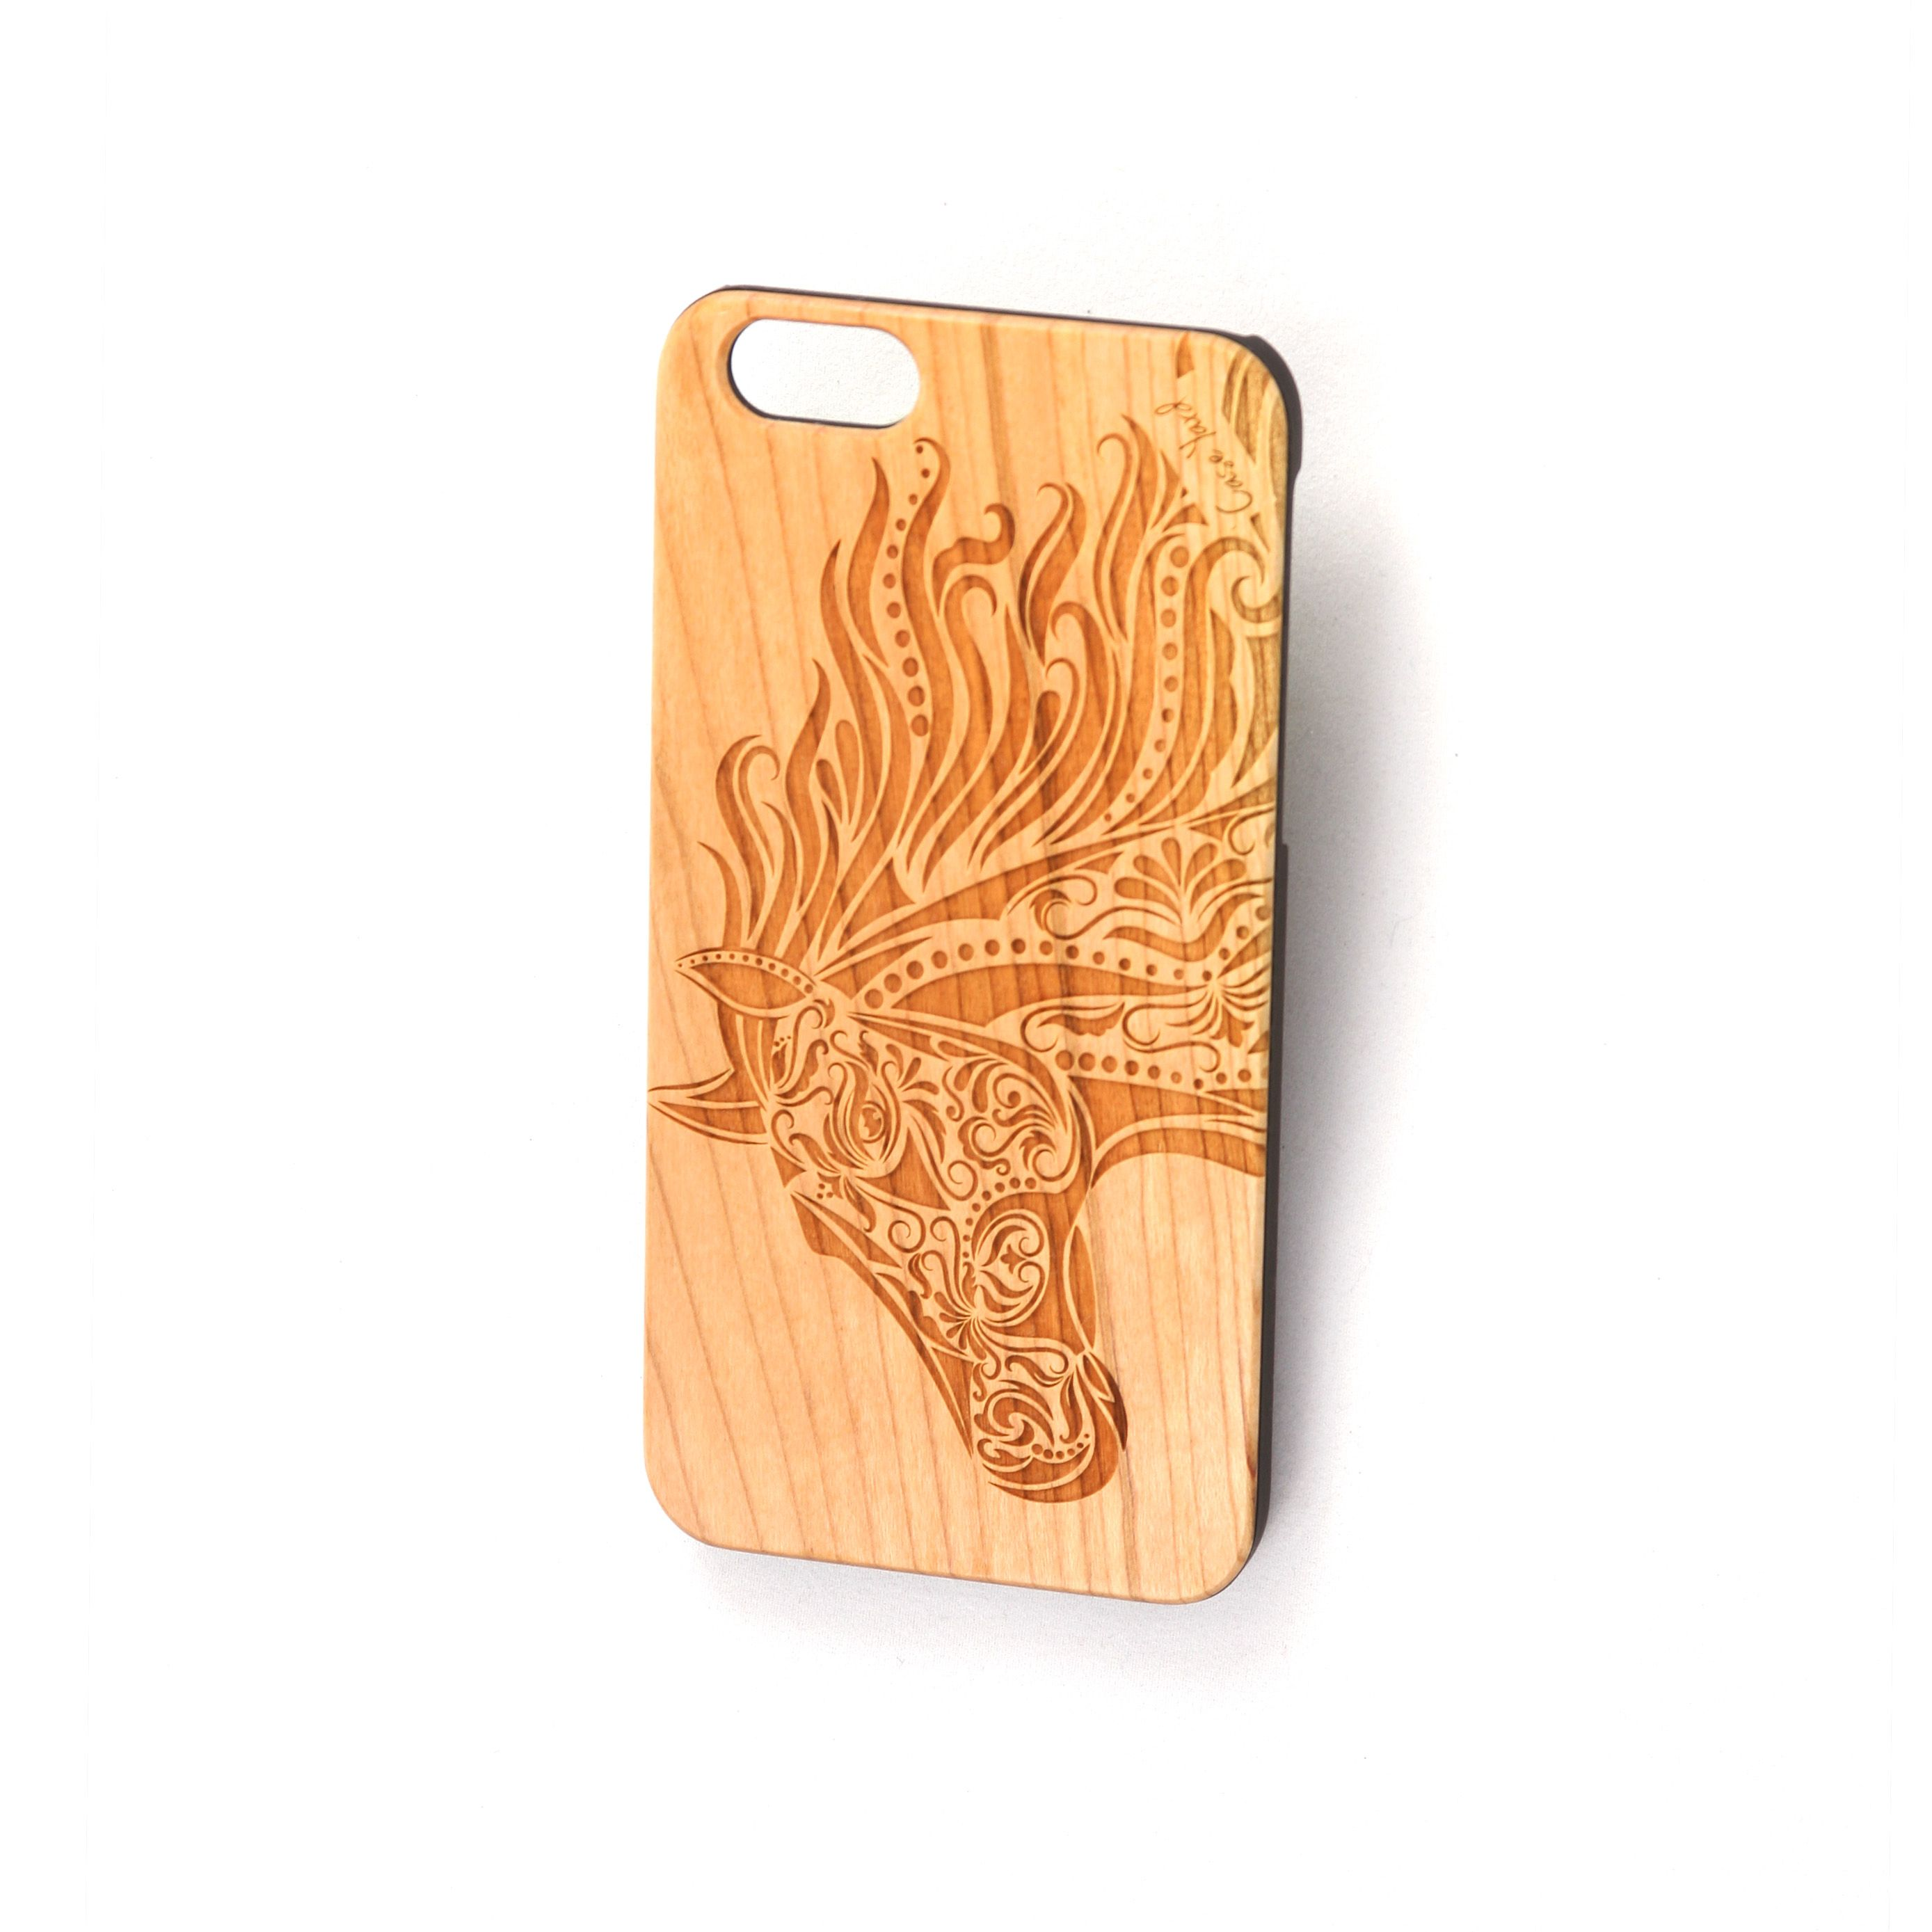 outlet store eff2a ce851 Wooden horse iphone case | Case Yard | Wooden phone case, Iphone ...